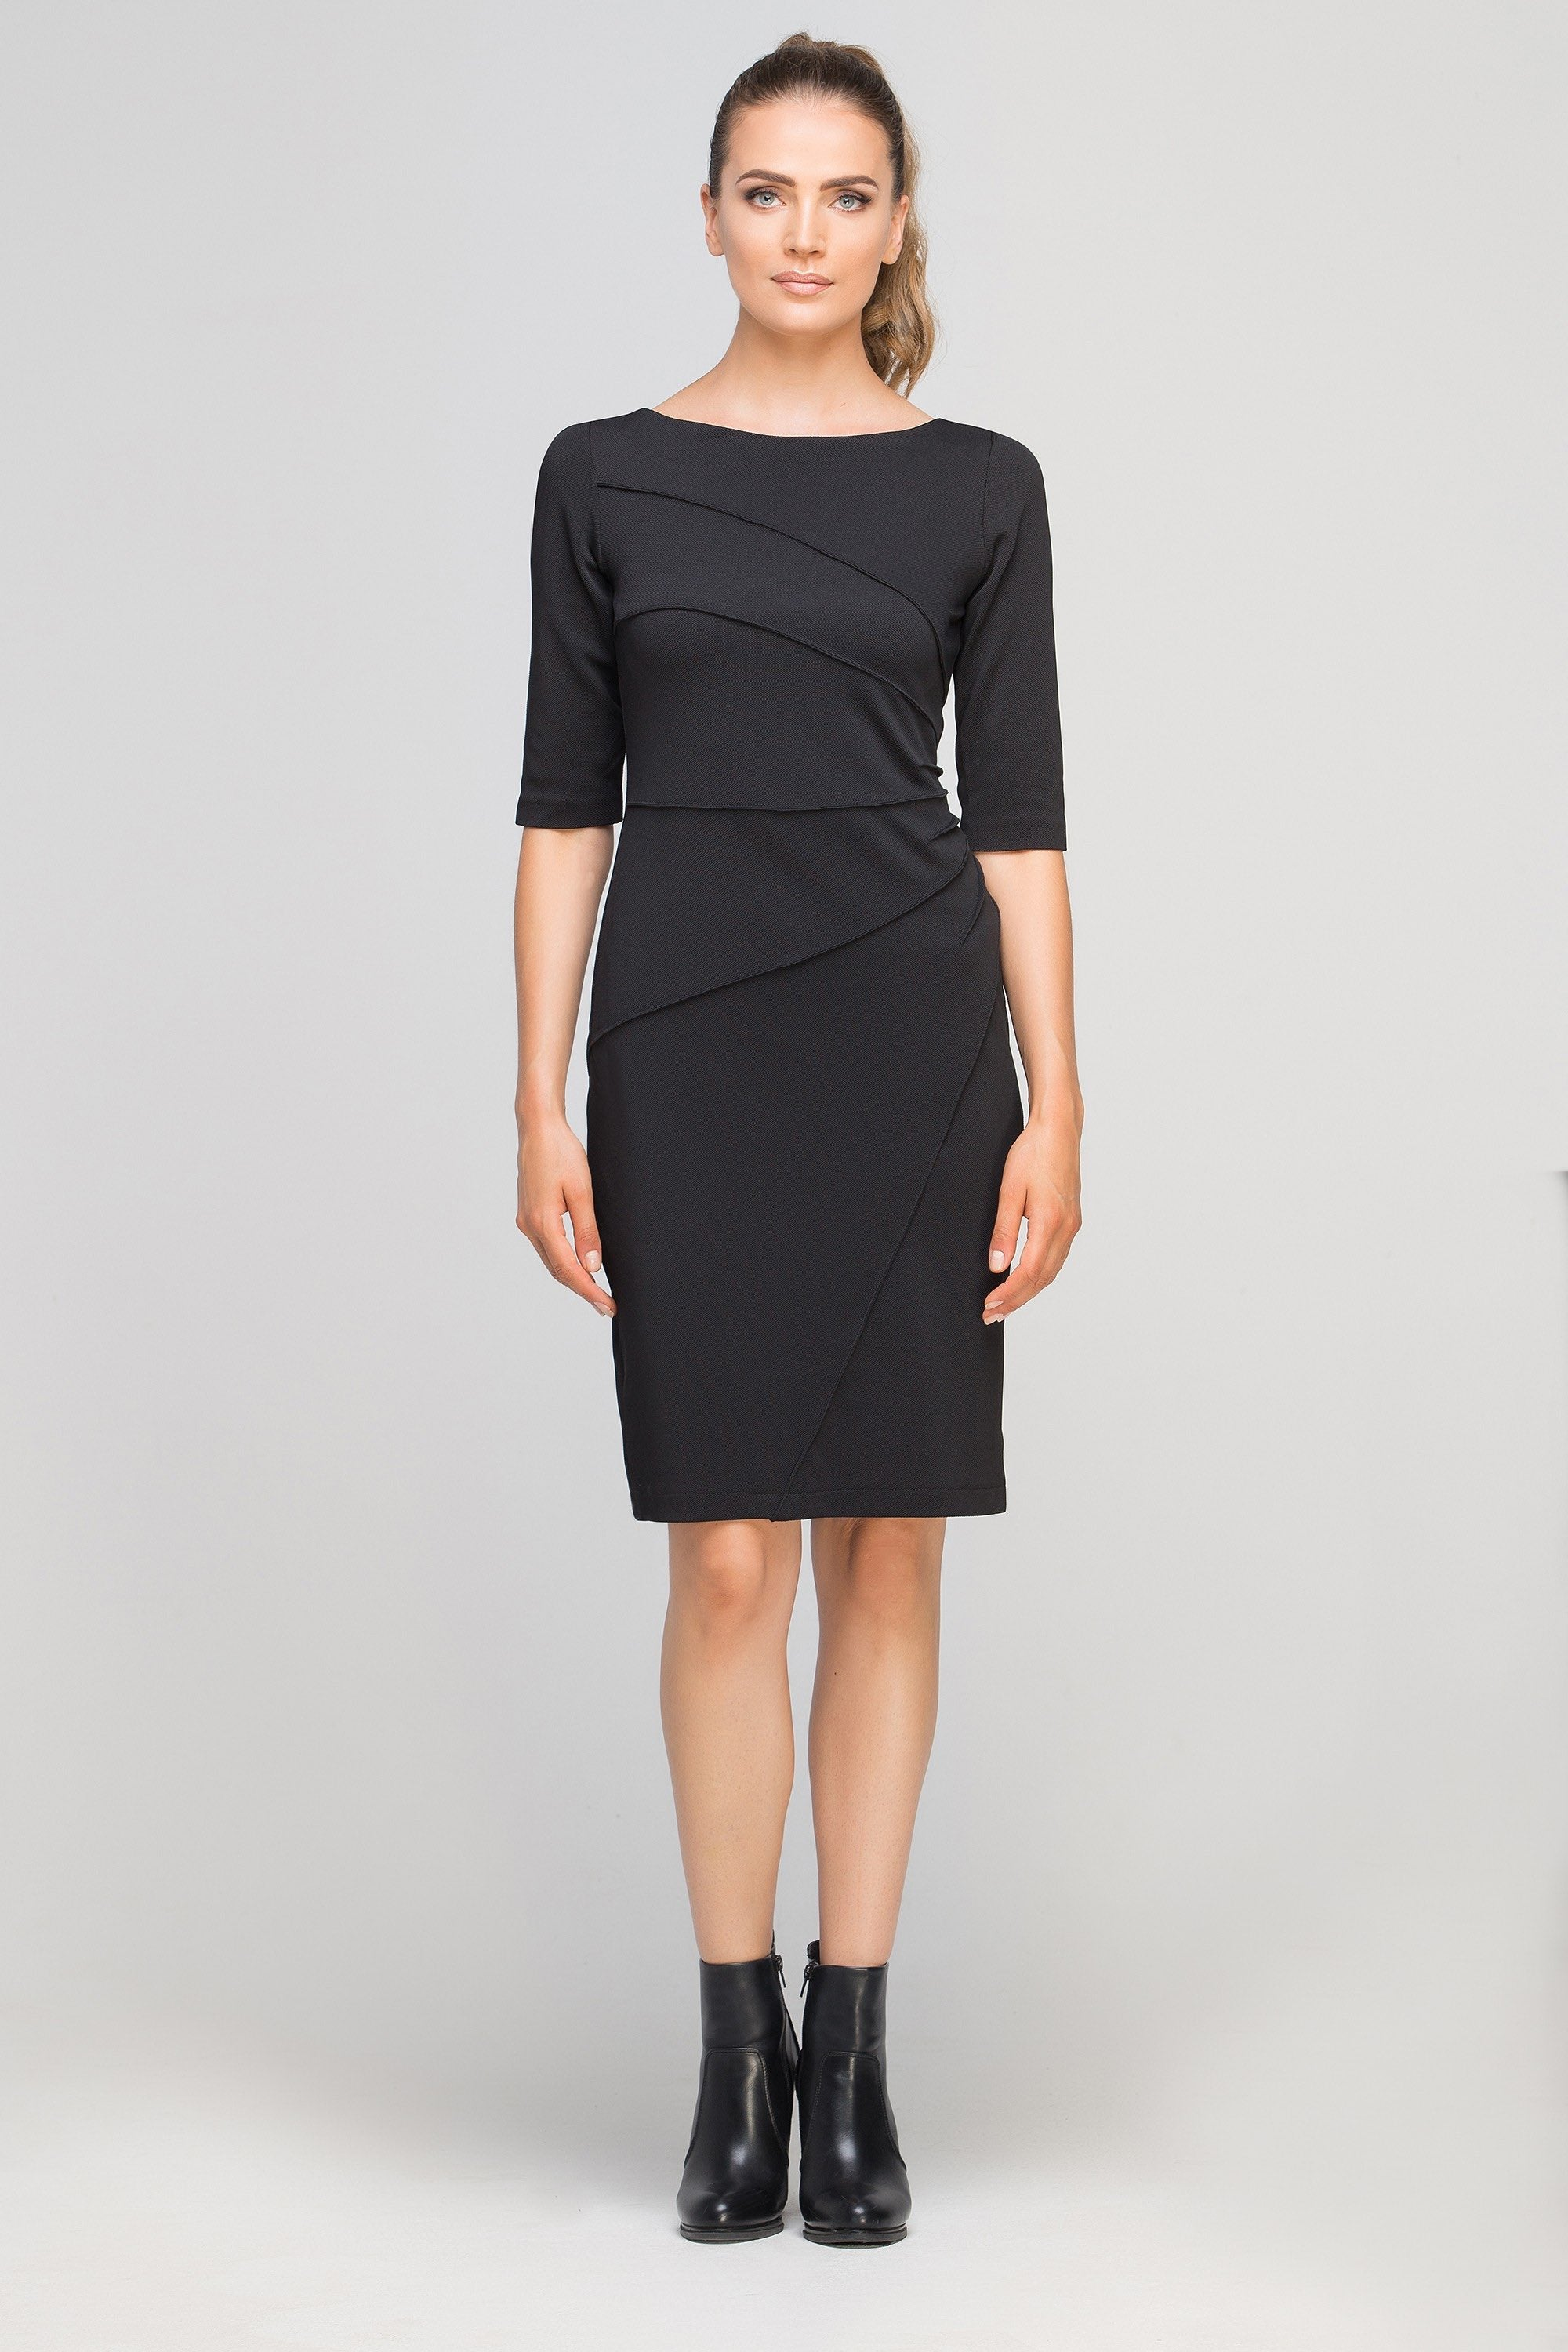 Robe Cintree Noire Incontournable Pour Un Look Glamour Mademoiselle Grenade